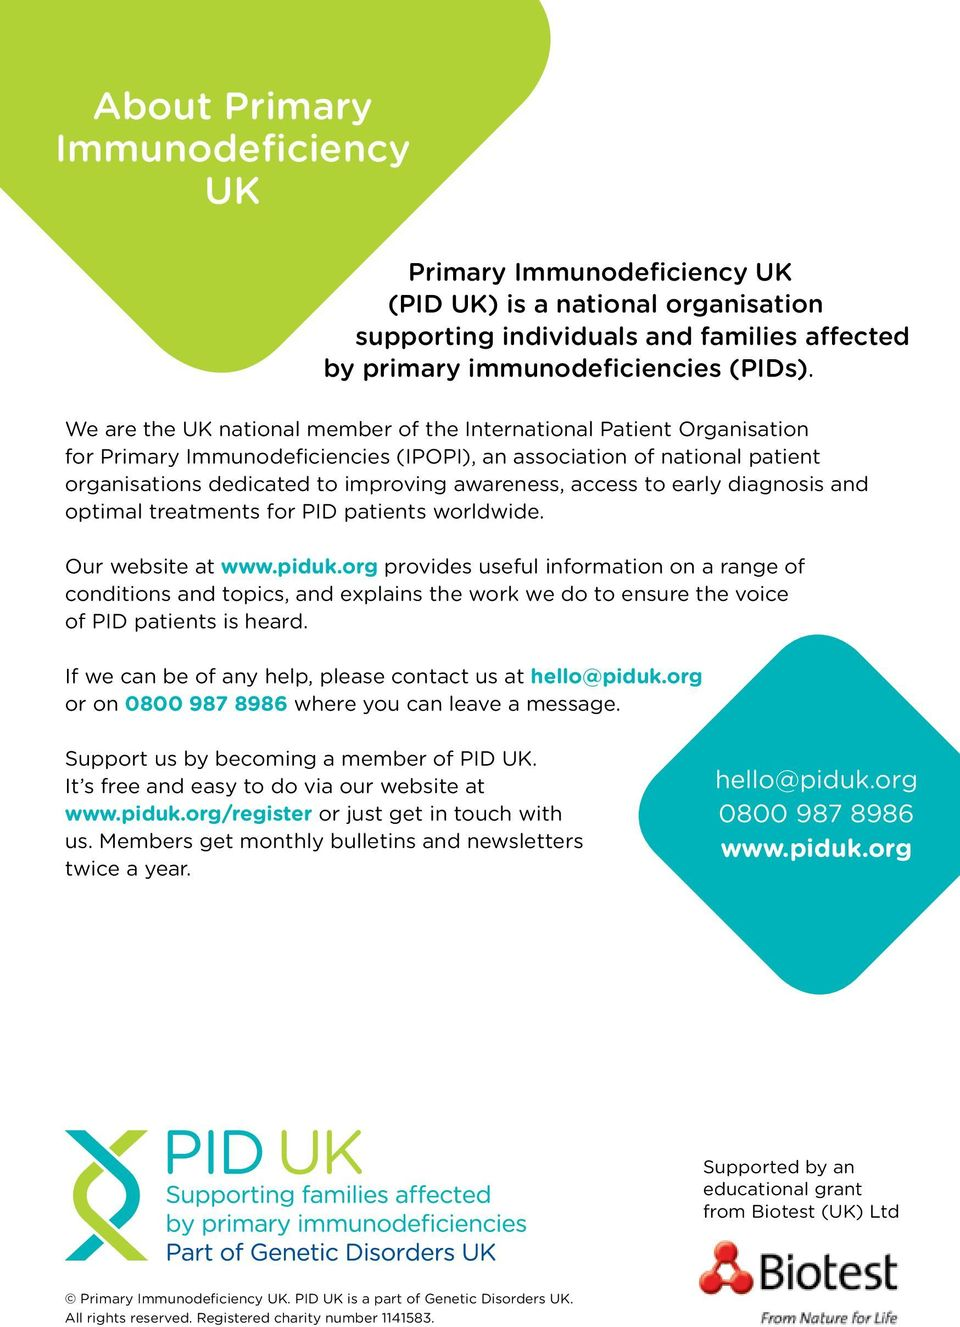 access to early diagnosis and optimal treatments for PID patients worldwide. Our website at www.piduk.